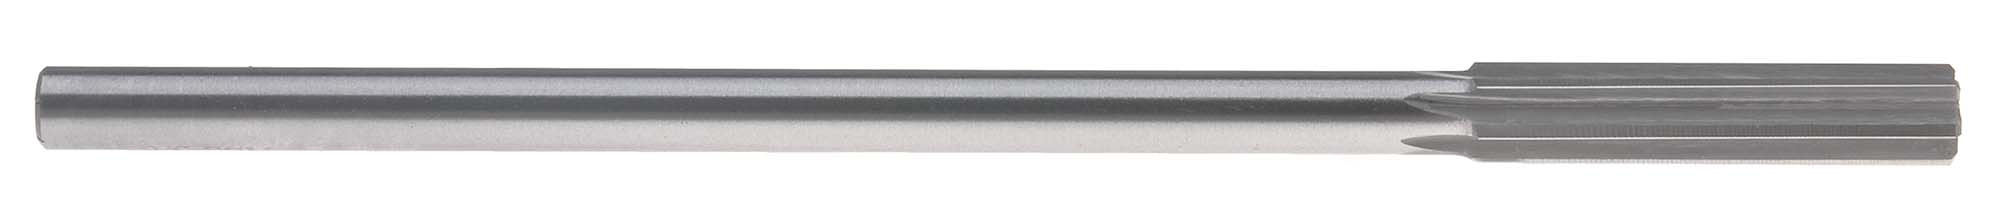 .376 Straight Shank Chucking Reamer, Straight Flute, High Speed Steel